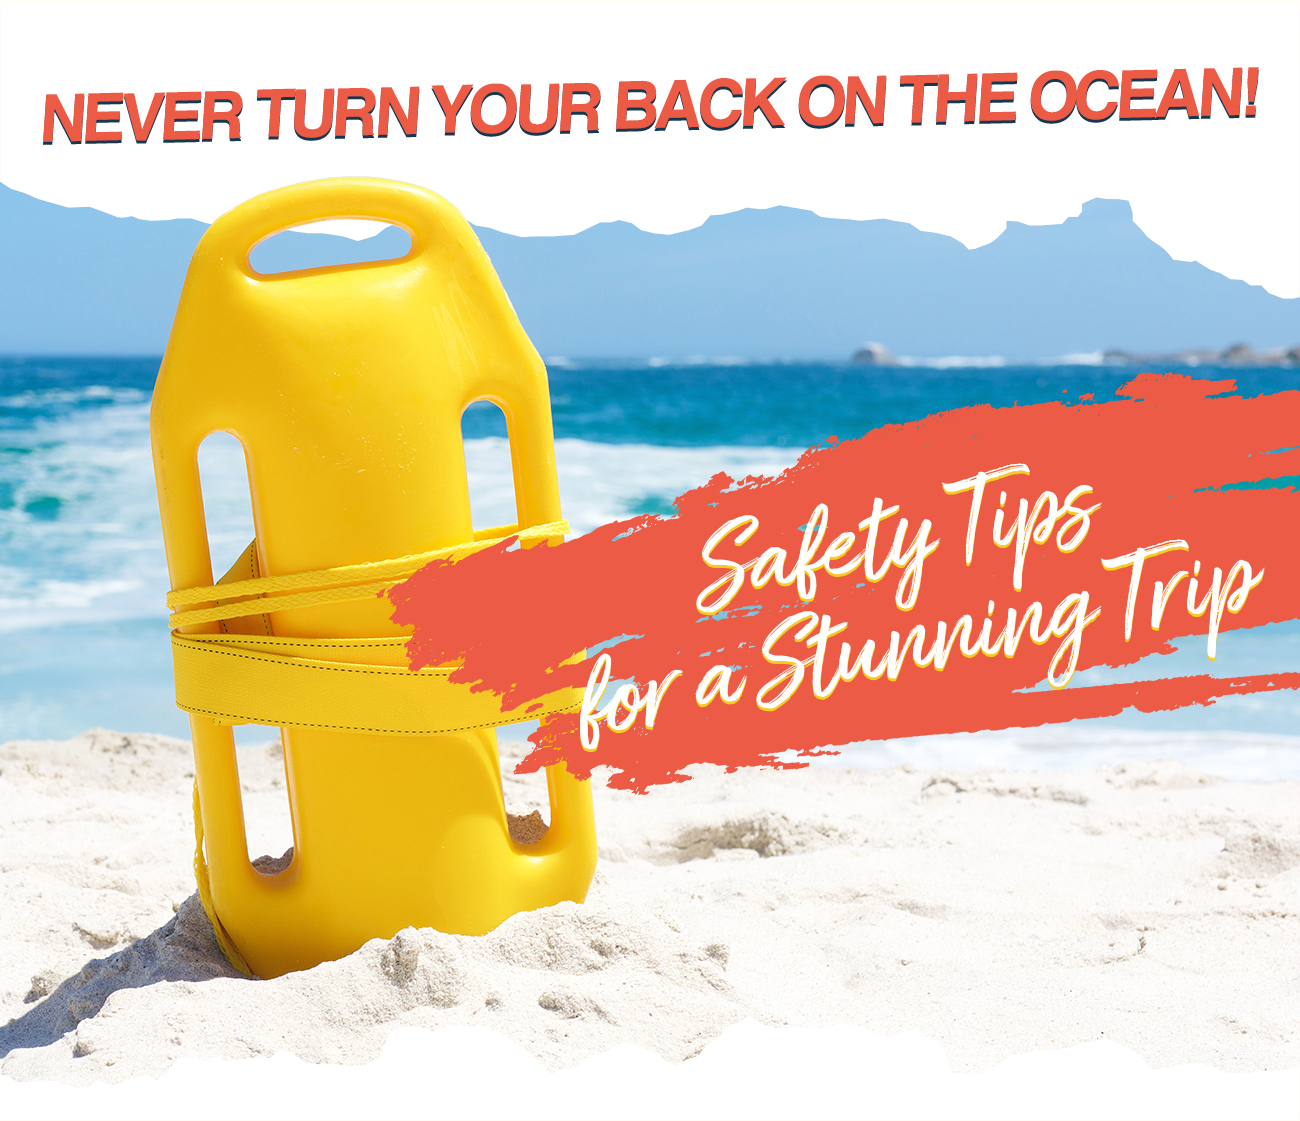 Never turn your back on the ocean! Safety Tips for a Stunning Trip